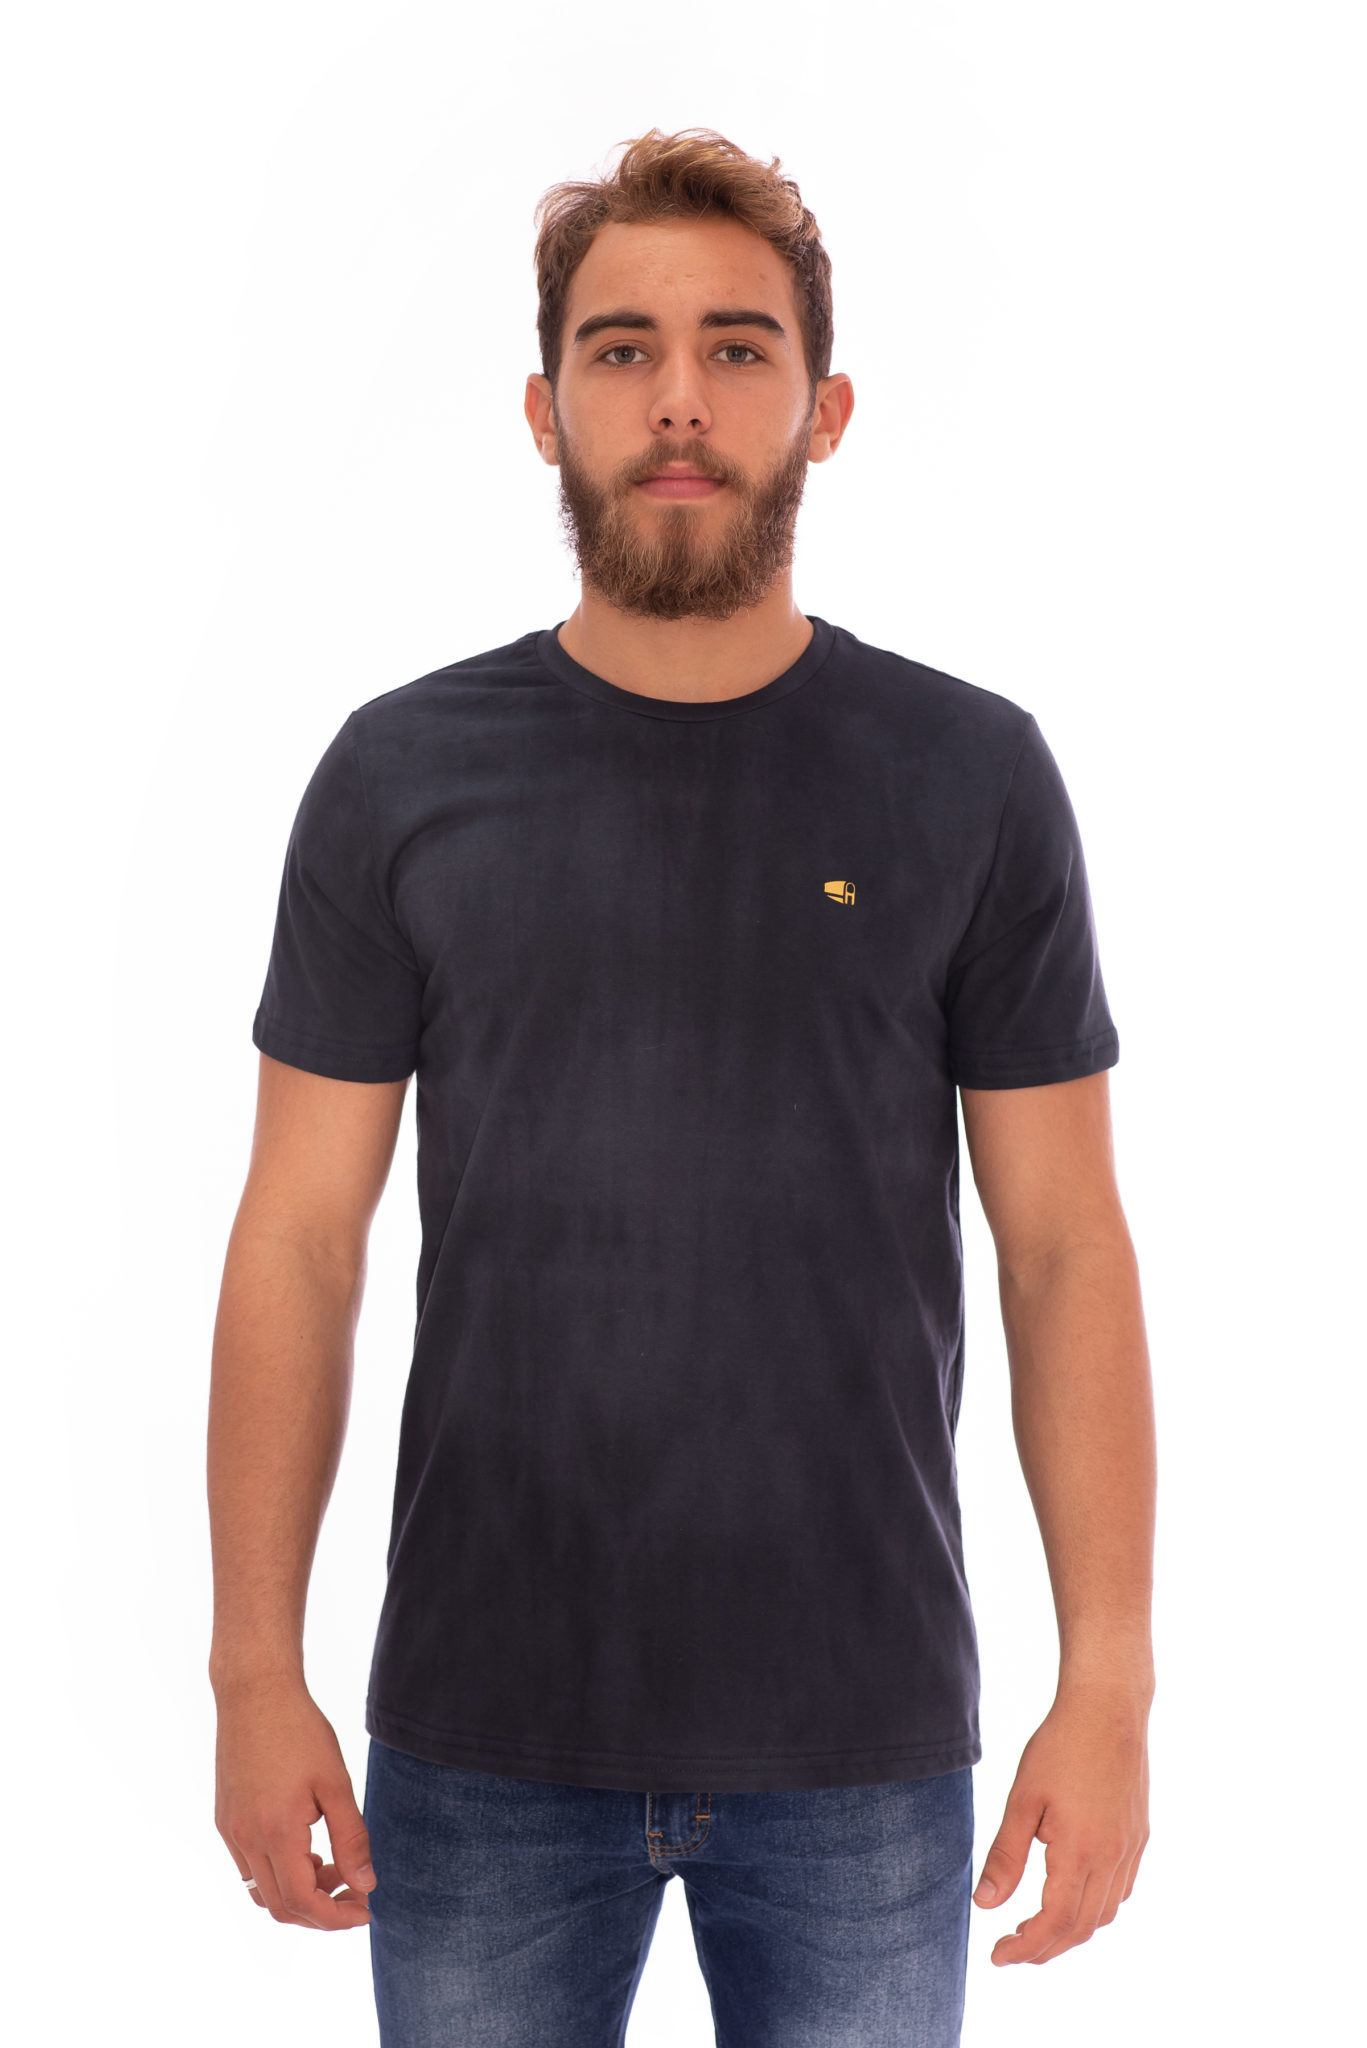 CAMISETA MASCULINA AEE SURF SLIM NEW SPLASH SMOKING REF. 1307